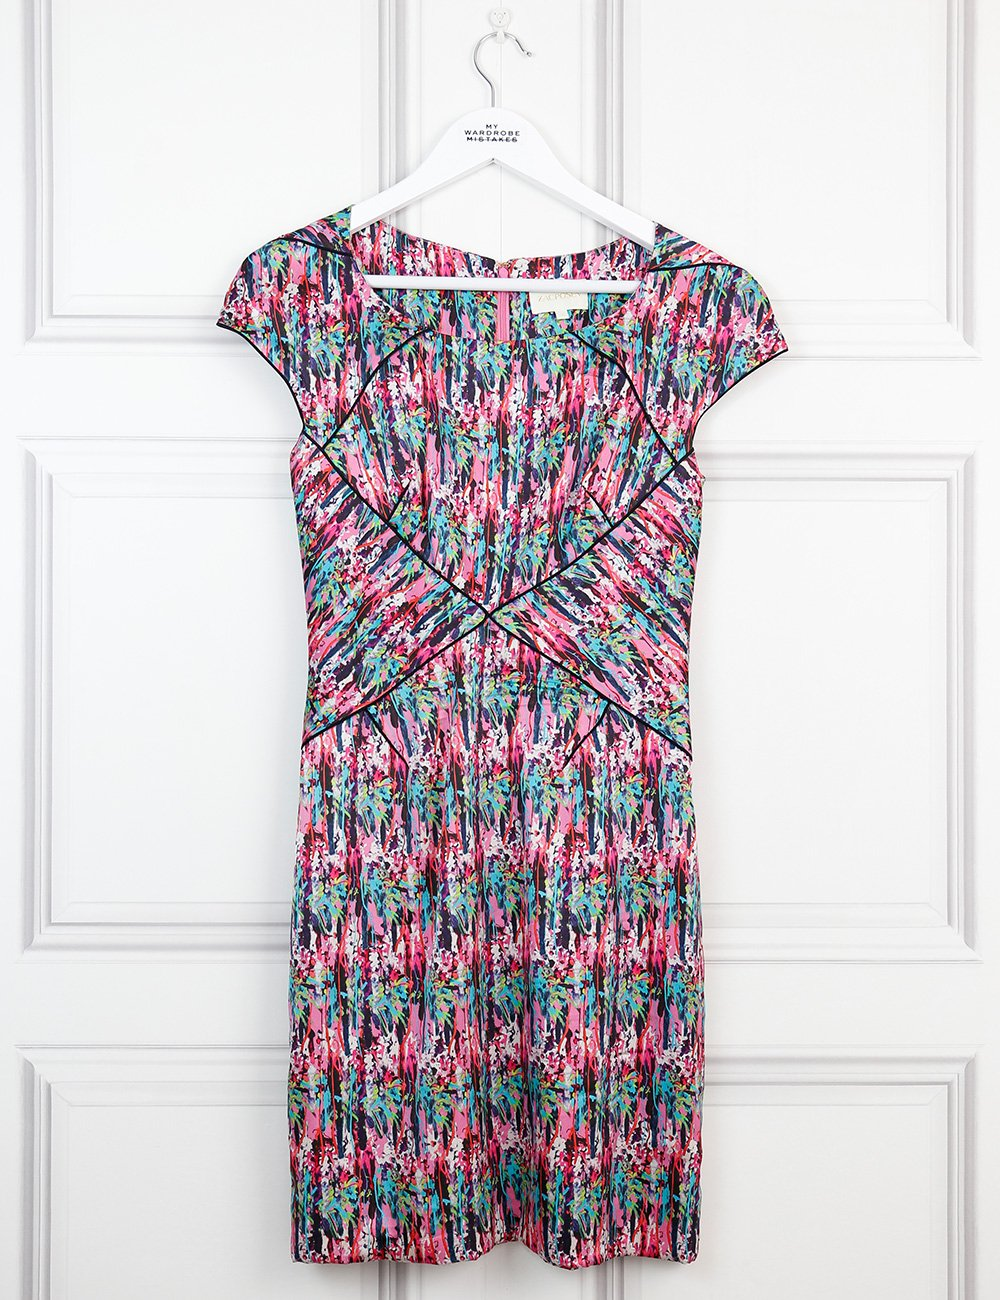 Zac Posen multicolour floral silk dress 8UK- My Wardrobe Mistakes